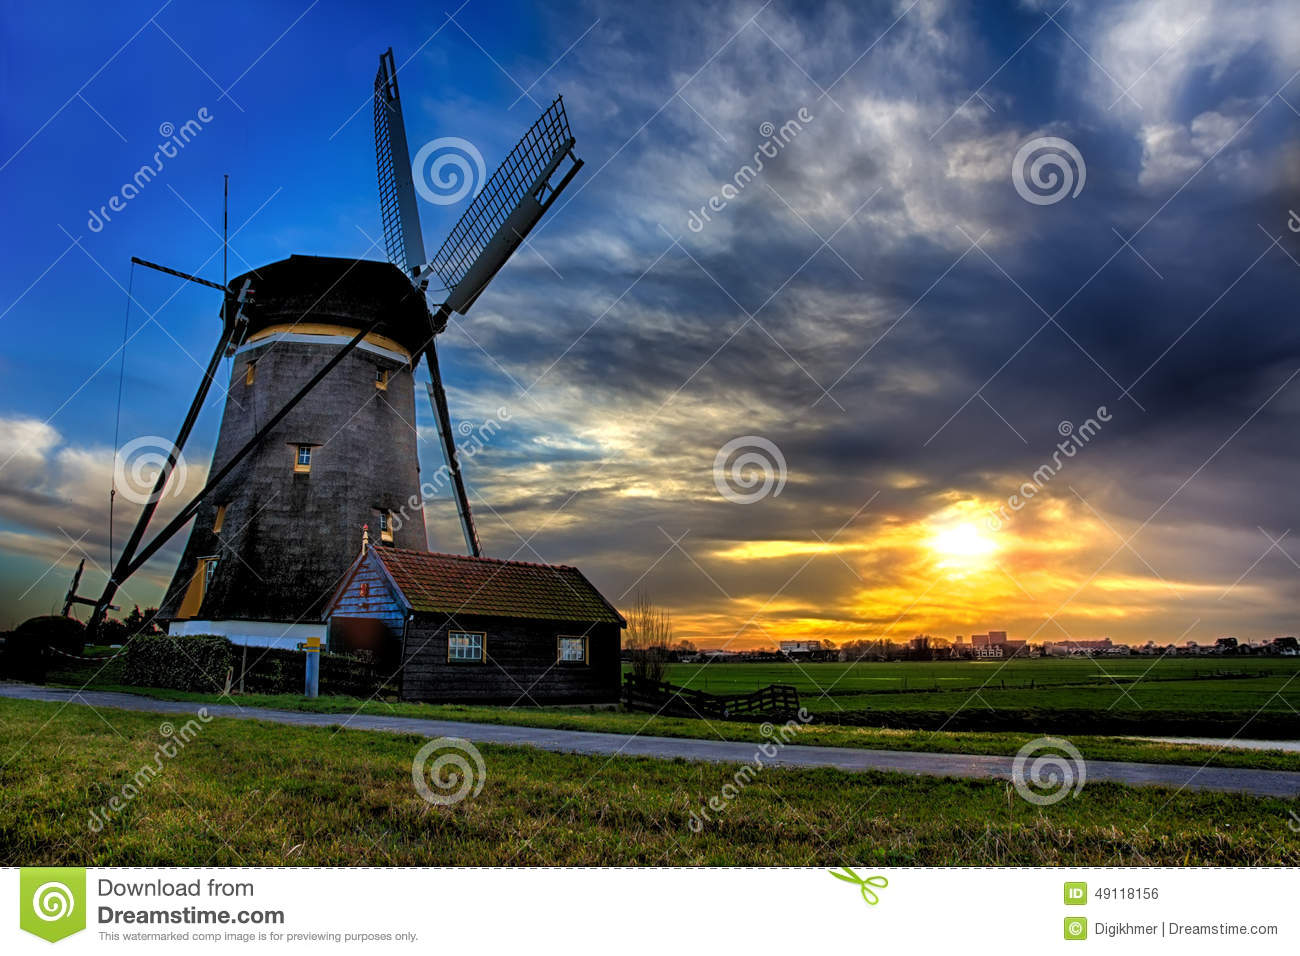 Sunrise House and the Giant of Netherlands